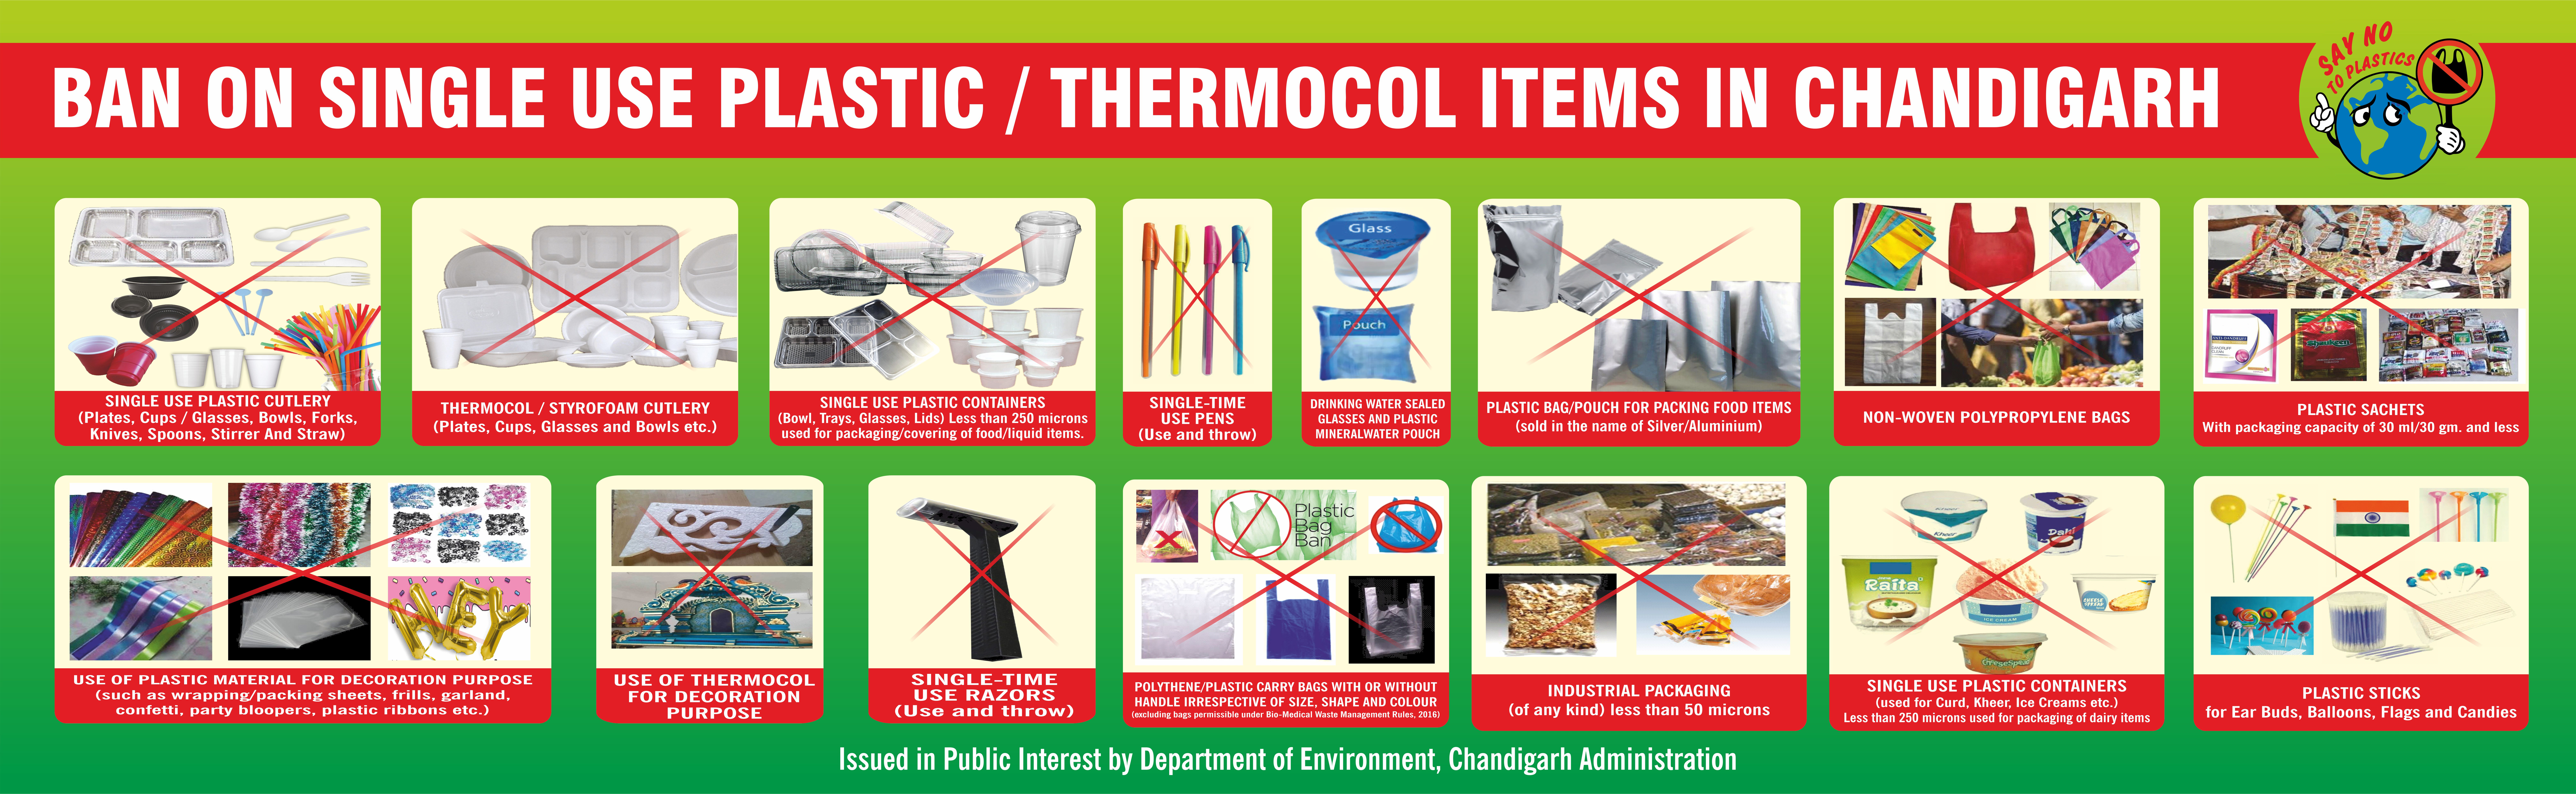 Ban on Single Use Plastic Thermocol Items in Chandigarh